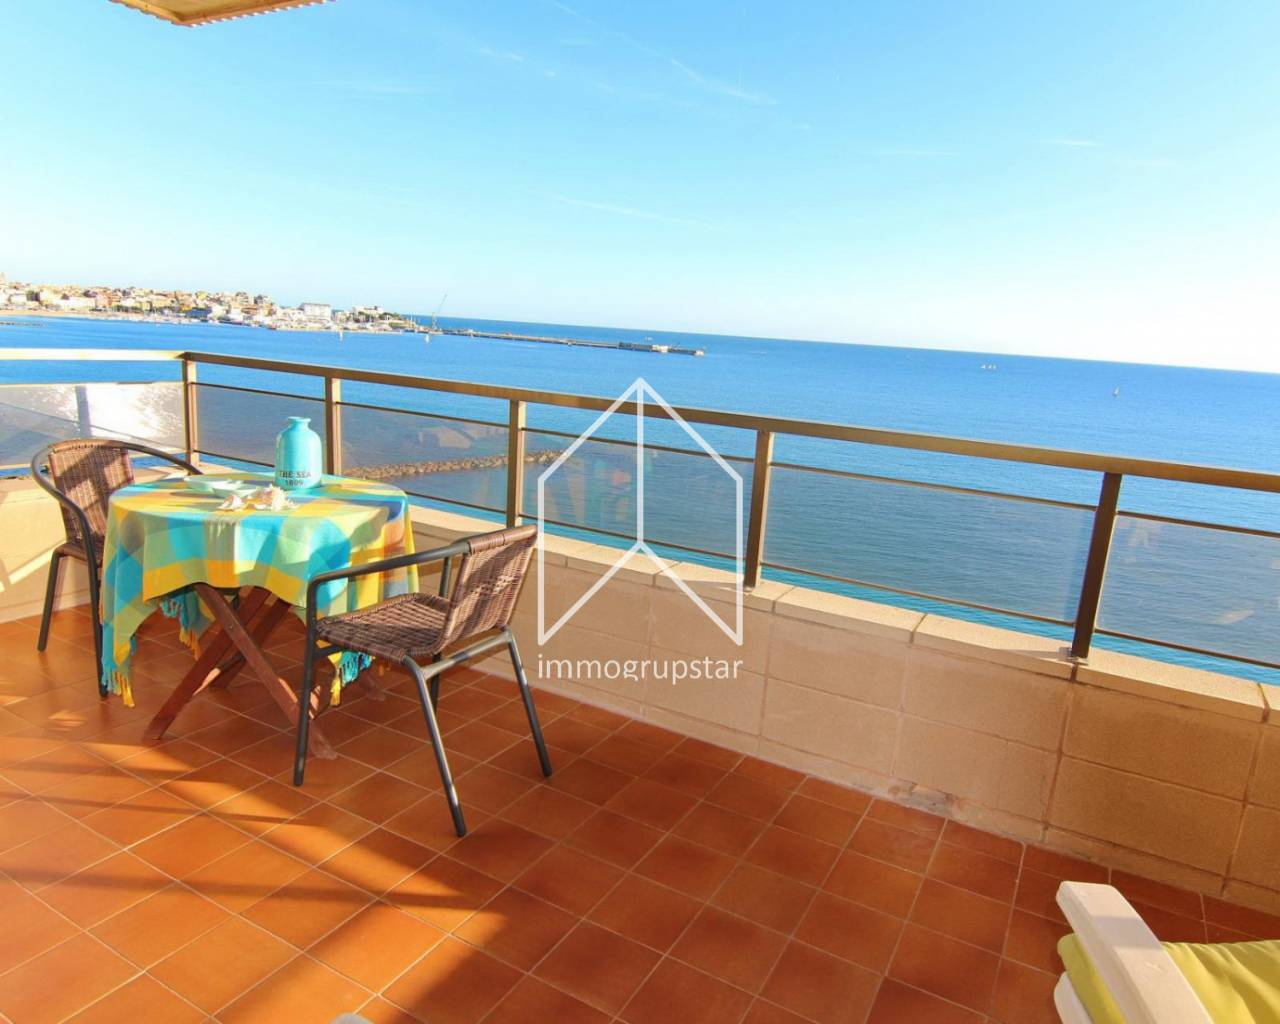 Apartment - Resale - Sant Antoni De Calonge - PRIMERA LINEA DE MAR